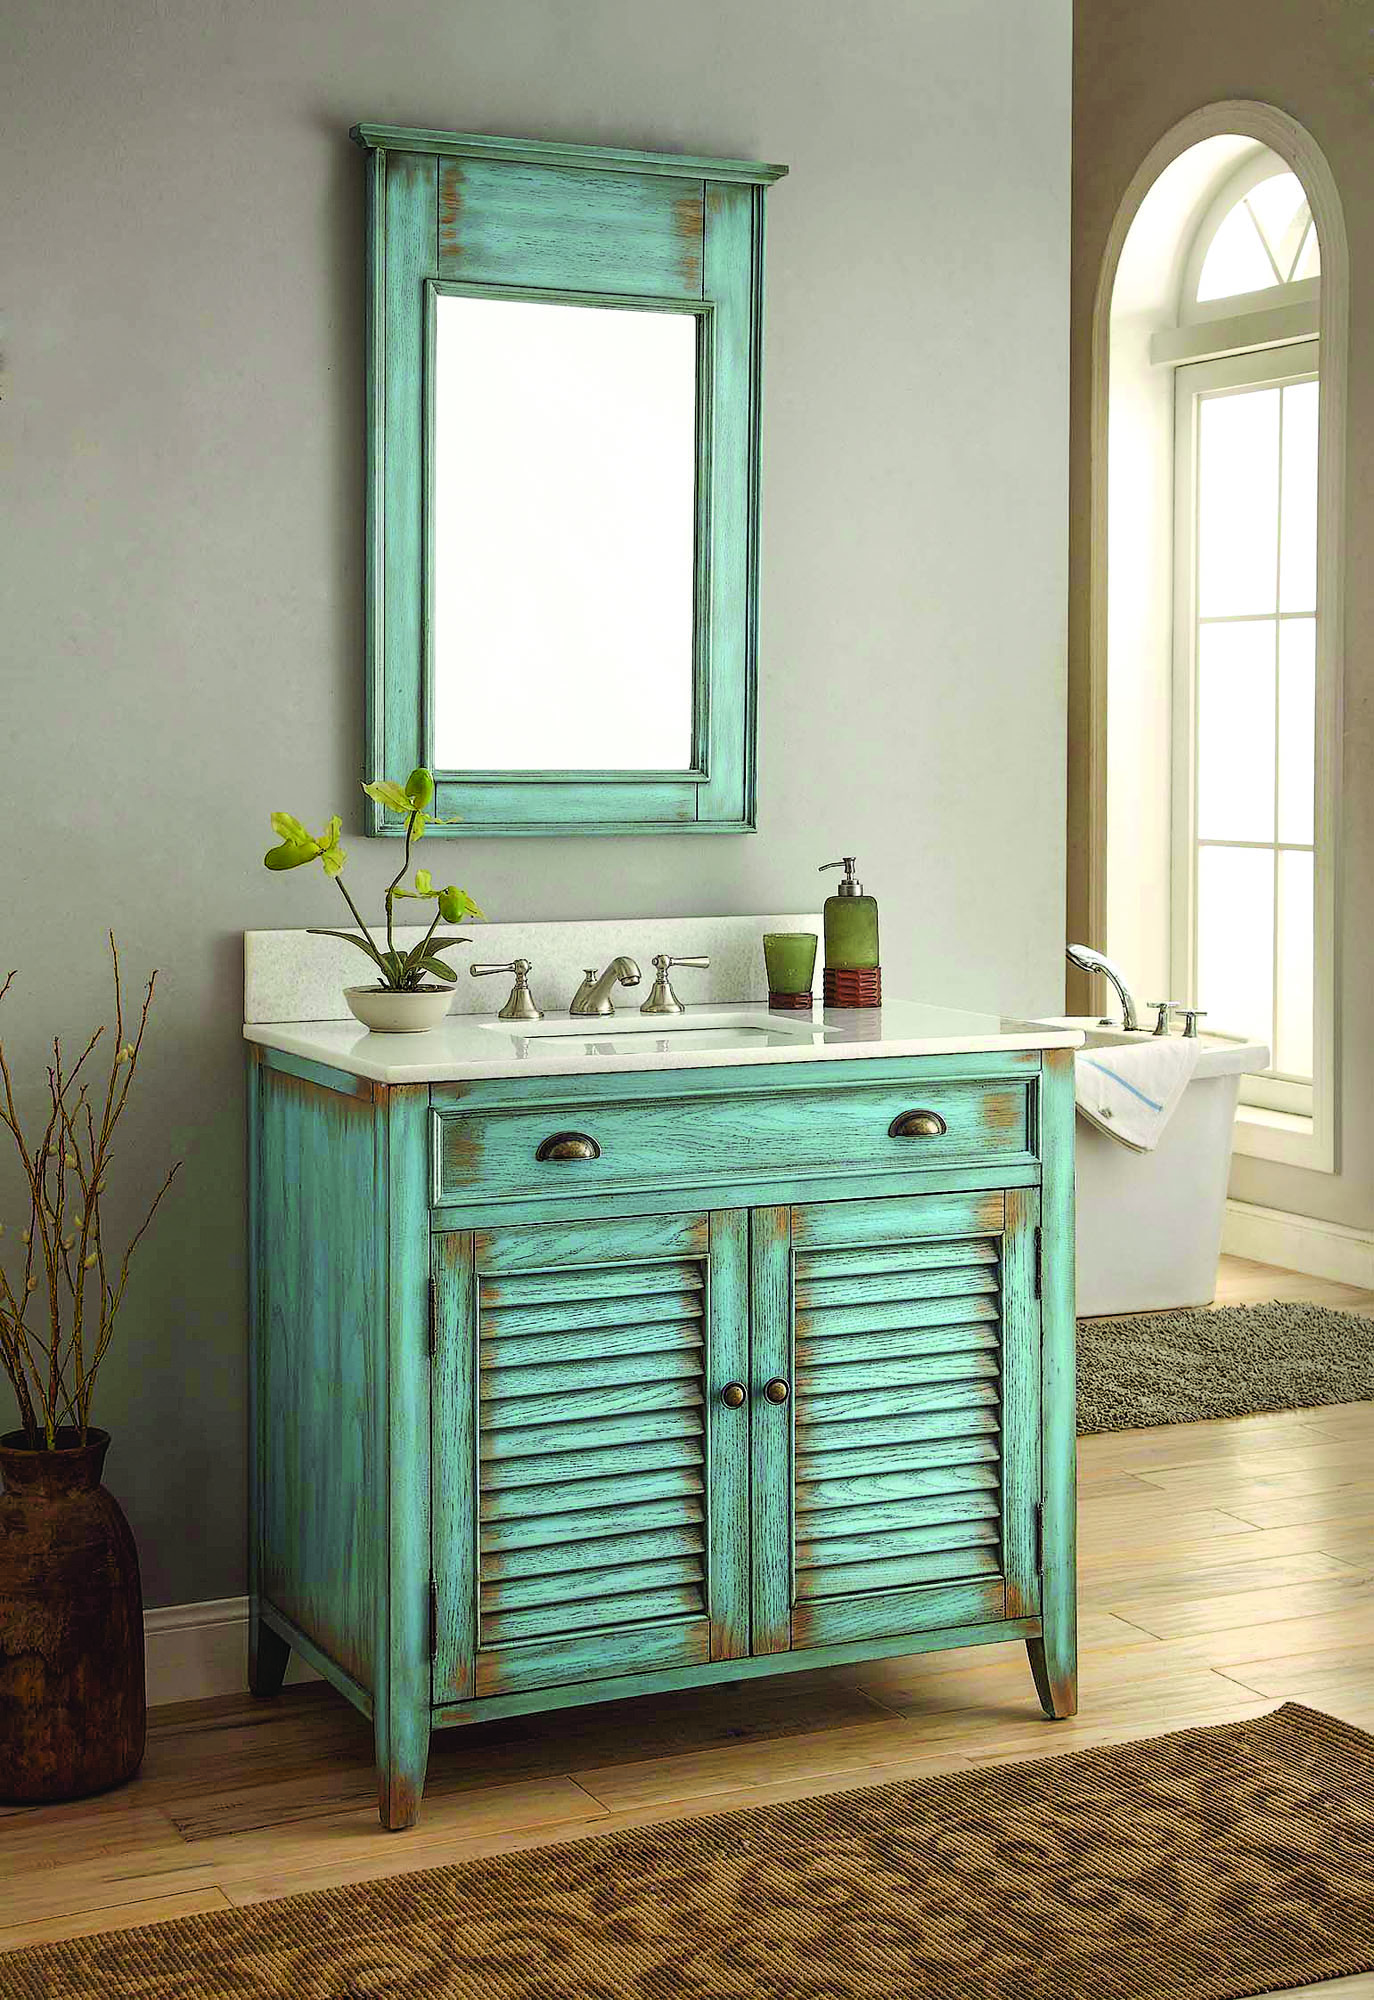 Plain And Simple Country Bath Old House Journal Magazine - Country-bathroom